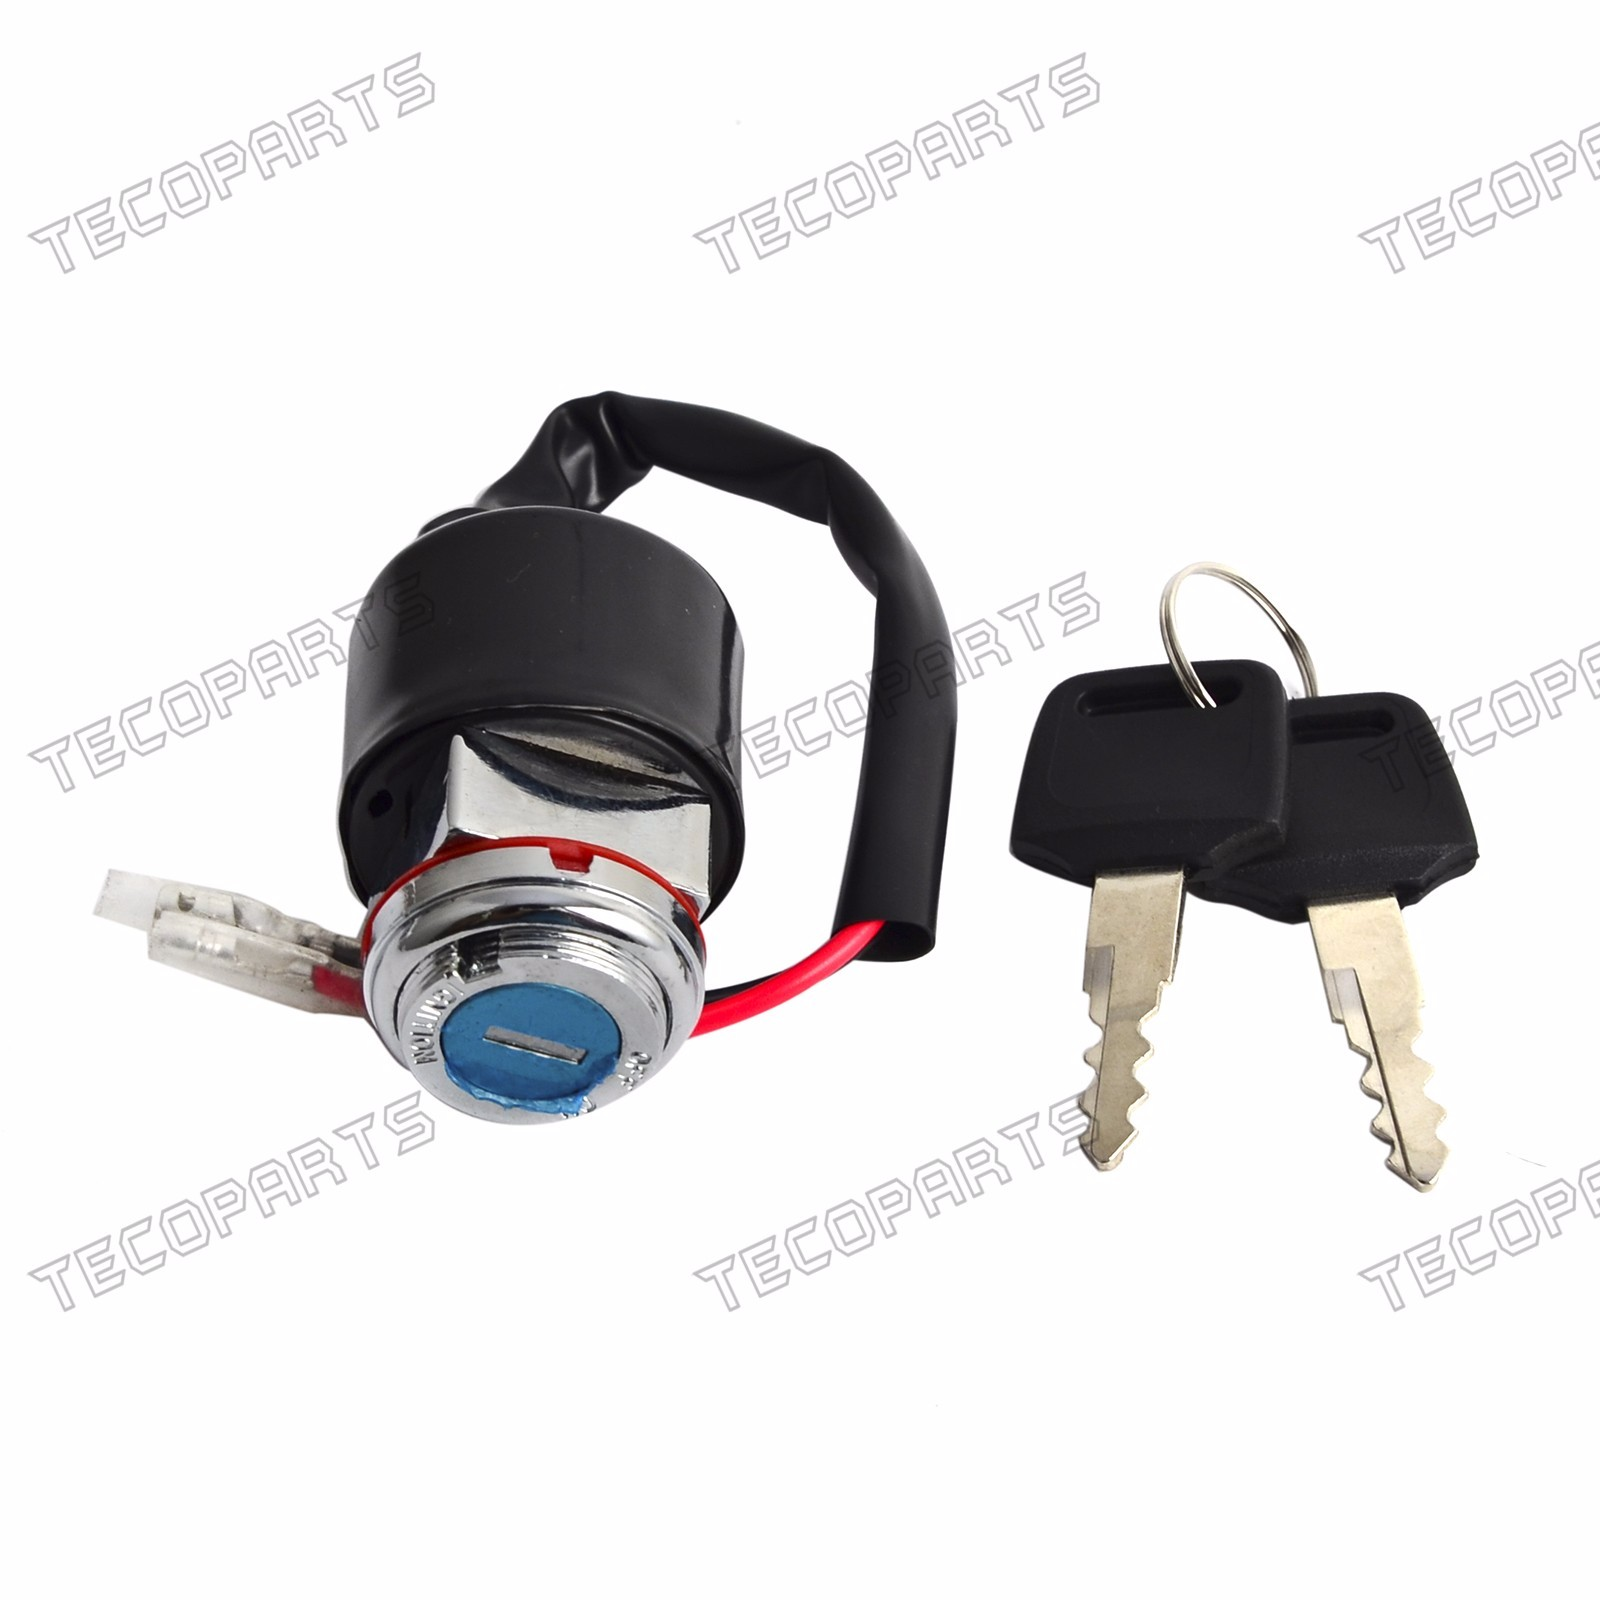 2-Wire Ignition Switch + 2 Keys for Honda CL70 CL90 S90 CB100 CB125 ...